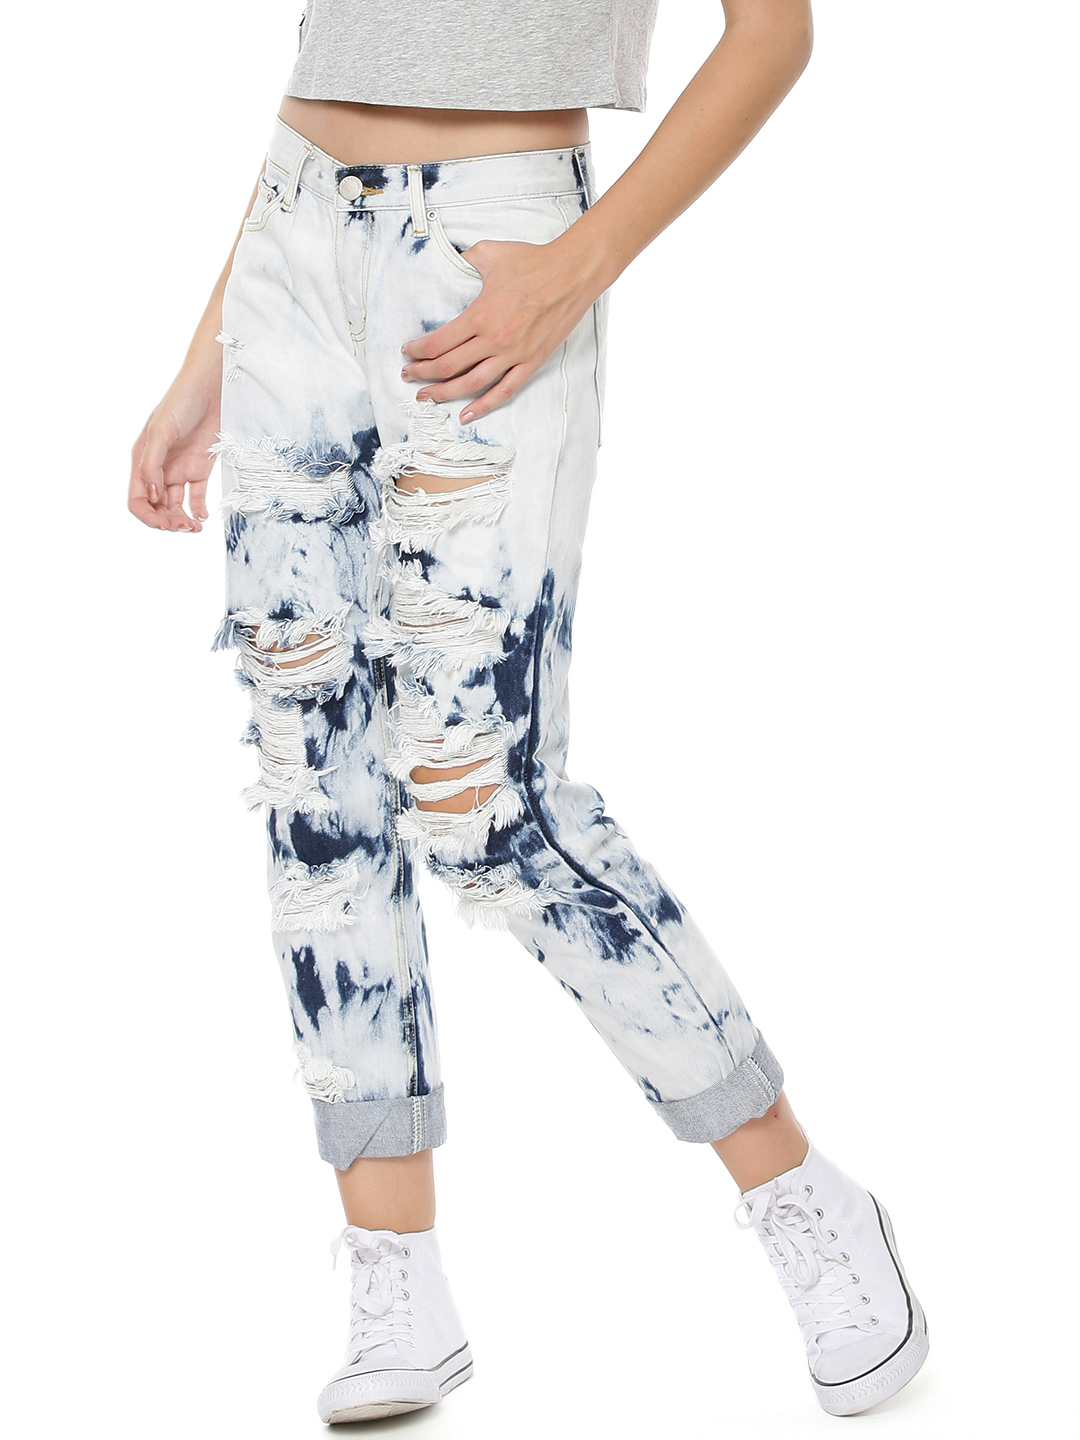 Glamorous BLEACH TIE DYE Distressed Bleach Tie Dye Jeans 1